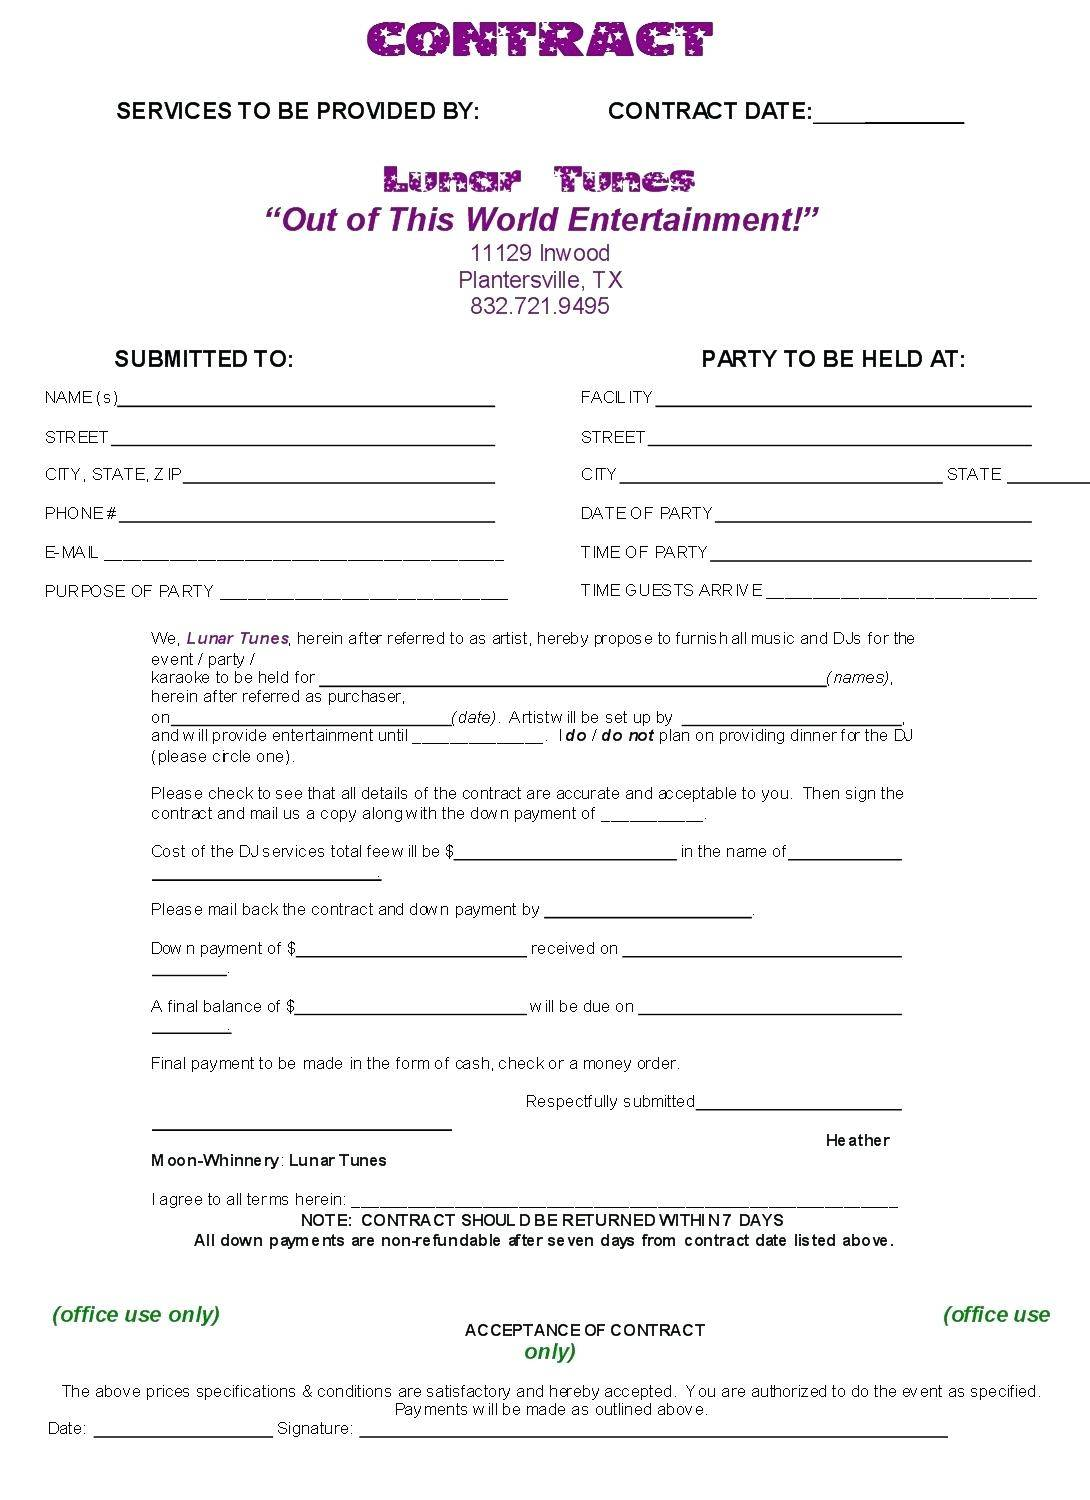 Subcontractor Agreement Template Qld